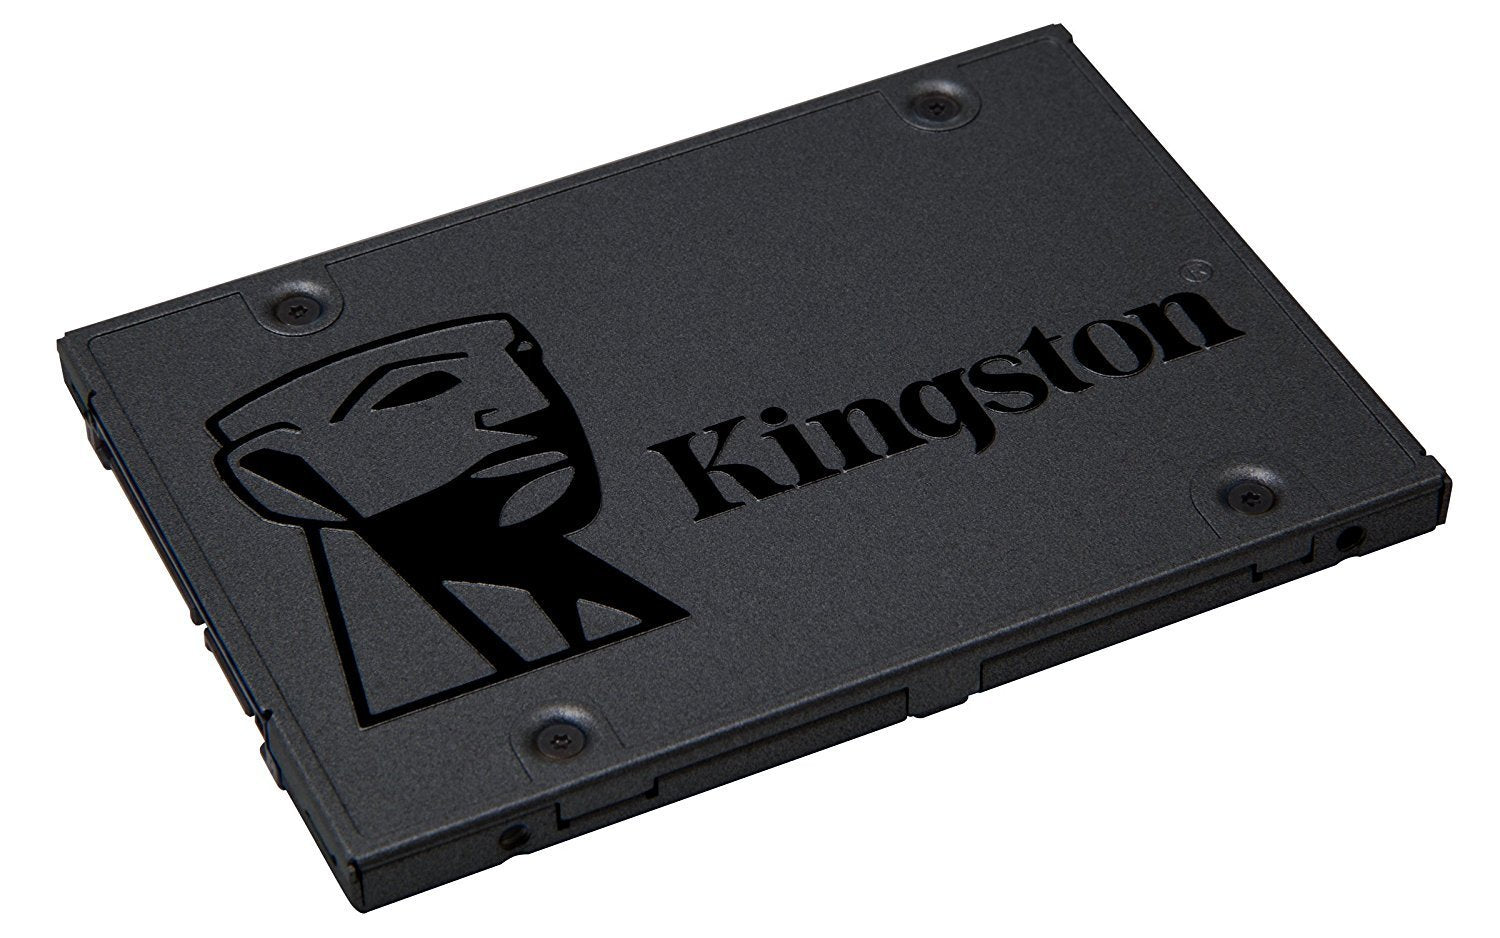 Kingston SSDNow A400 240GB SATA 3 Solid State Drive (SA400S37/240G)